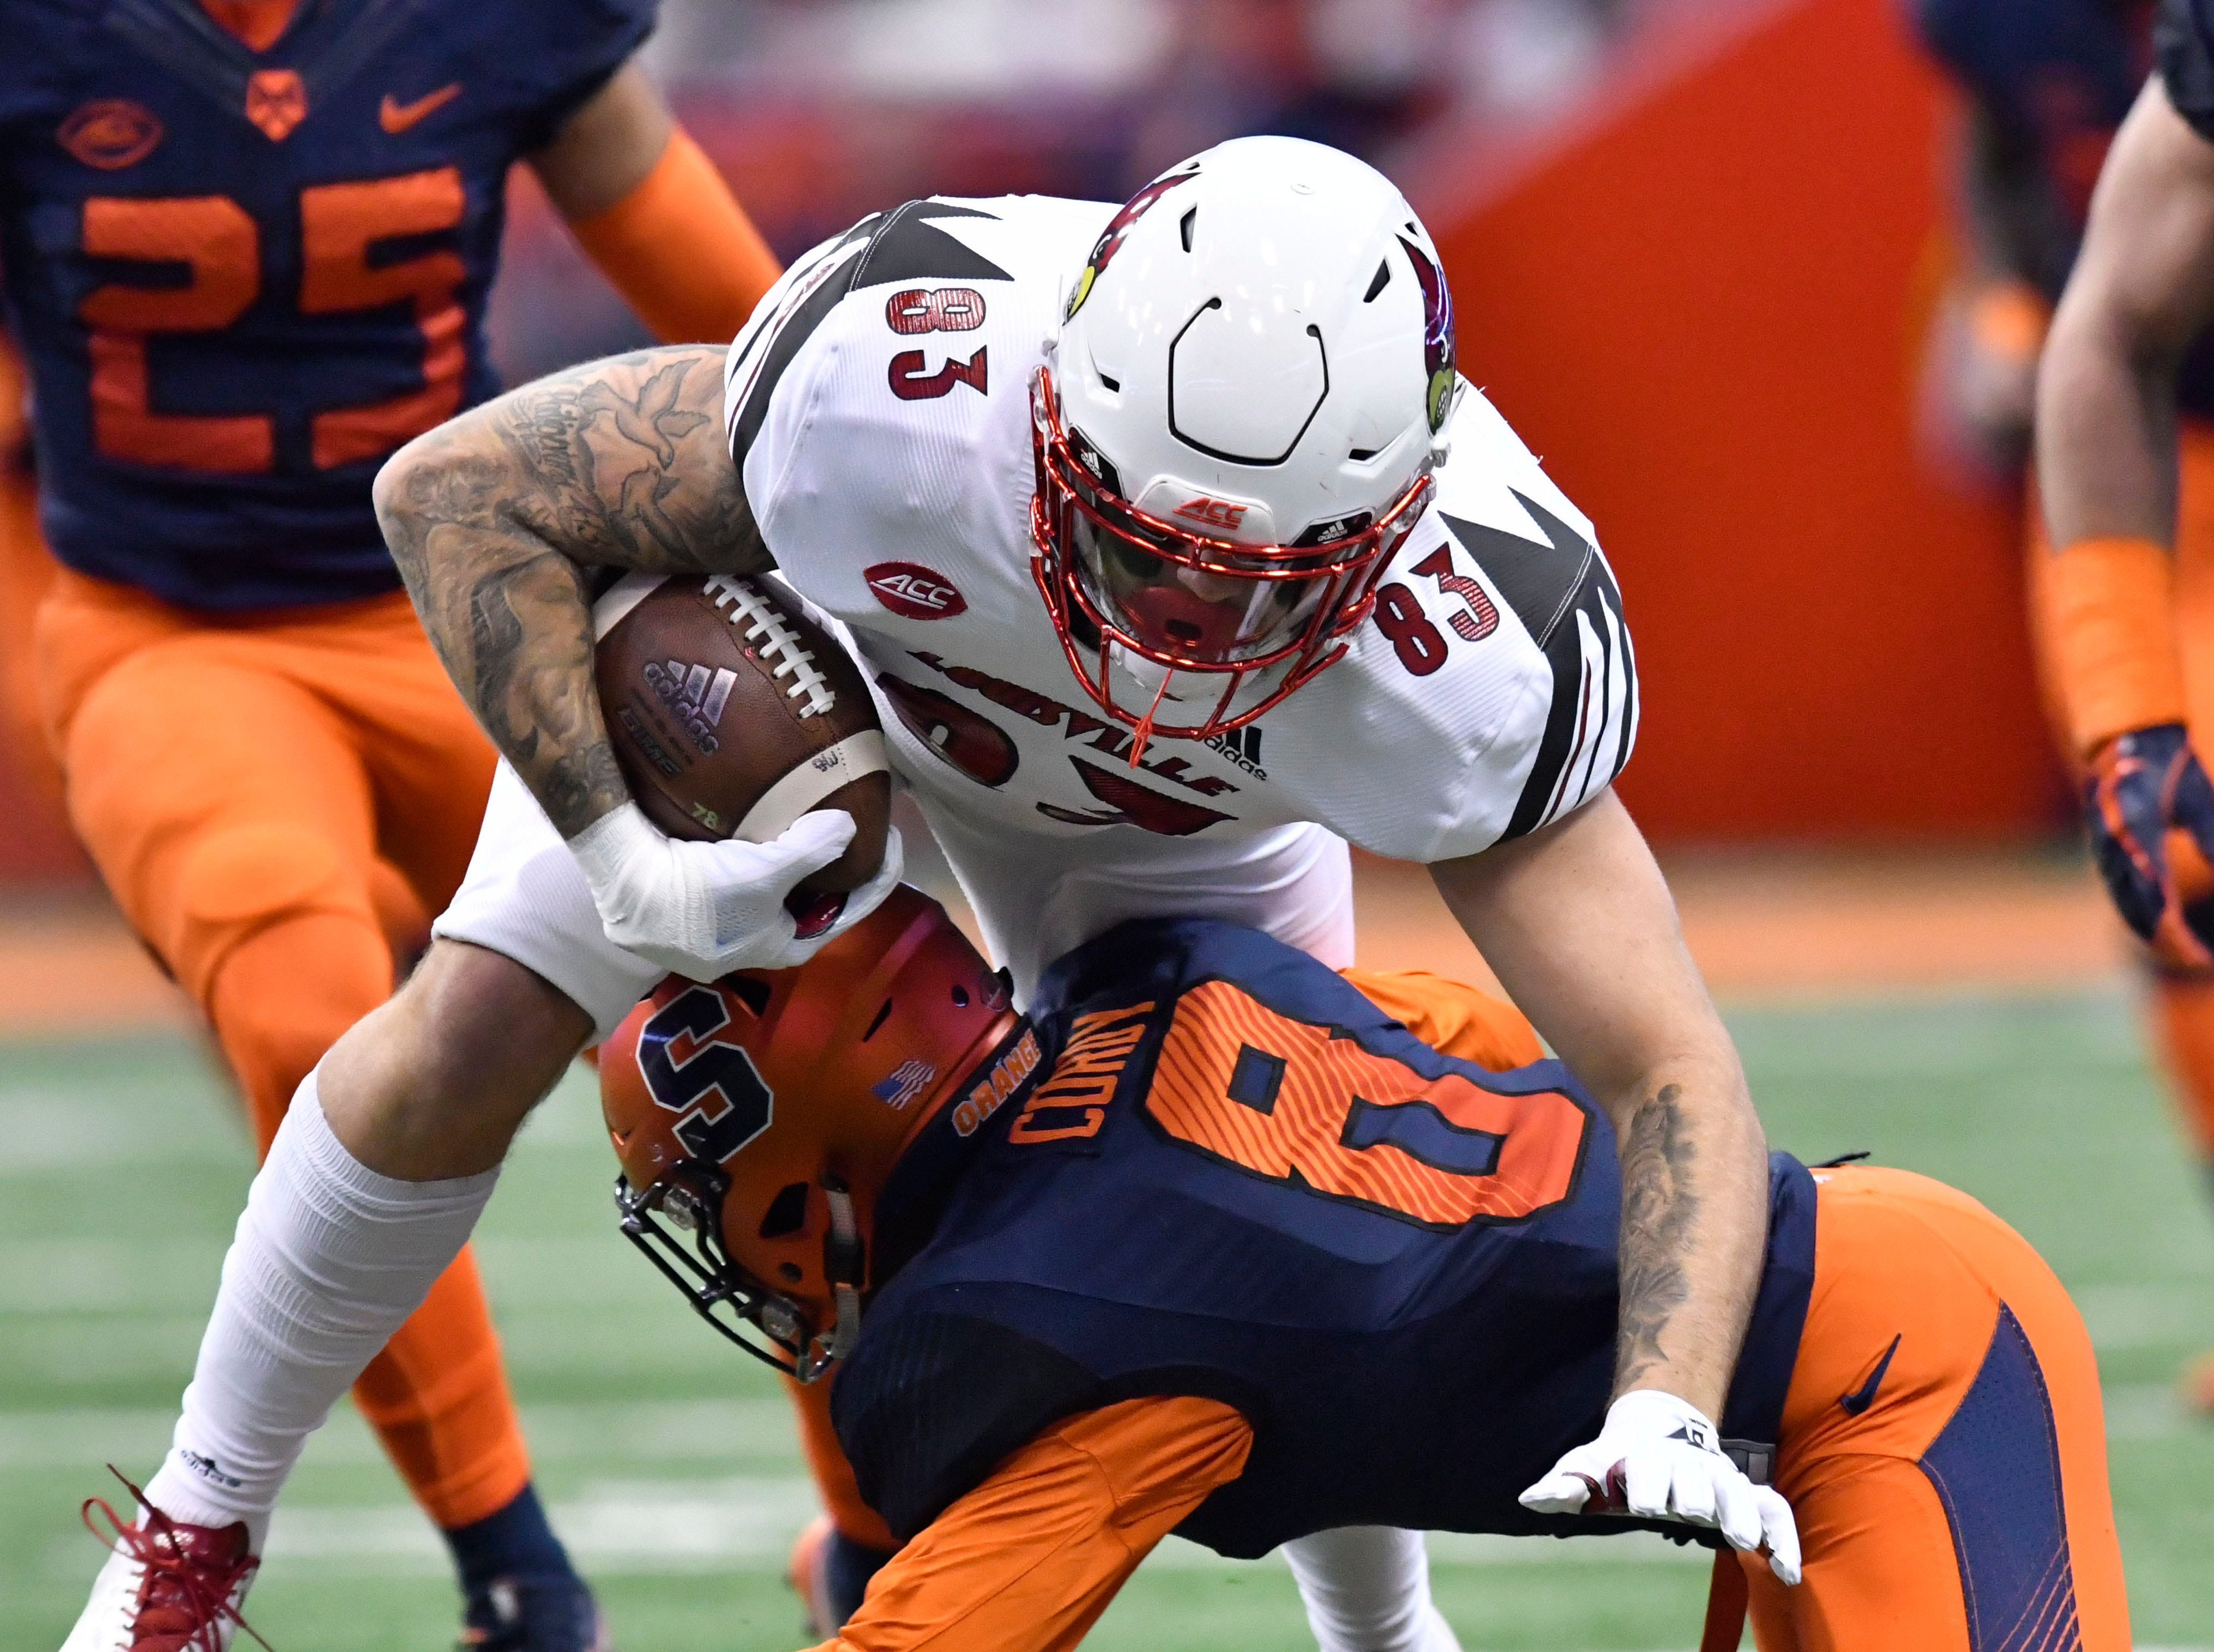 Louisville Cardinals tight end Micky Crum (83) is tackled by Syracuse Orange defensive back Antwan Cordy (8) after making a catch during the first quarter at the Carrier Dome.